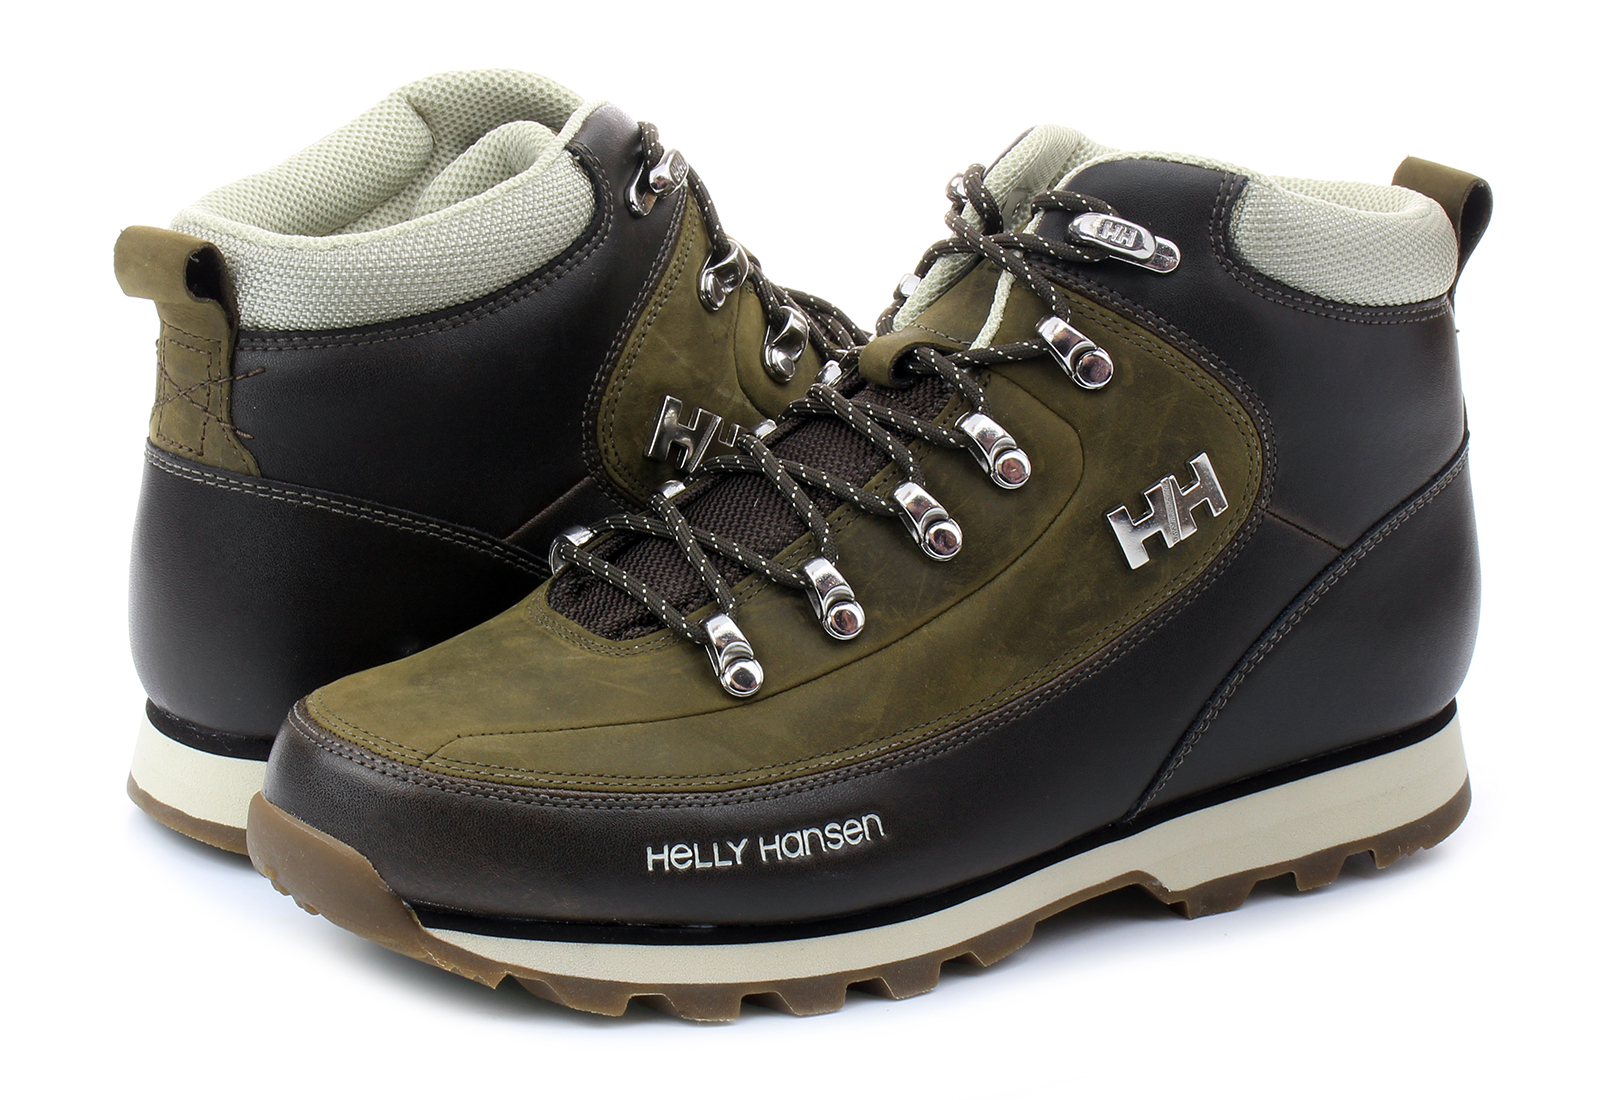 Helly Hansen Bakancs - W The Forester - 10516-708 - Office Shoes ... ffe88b5af5